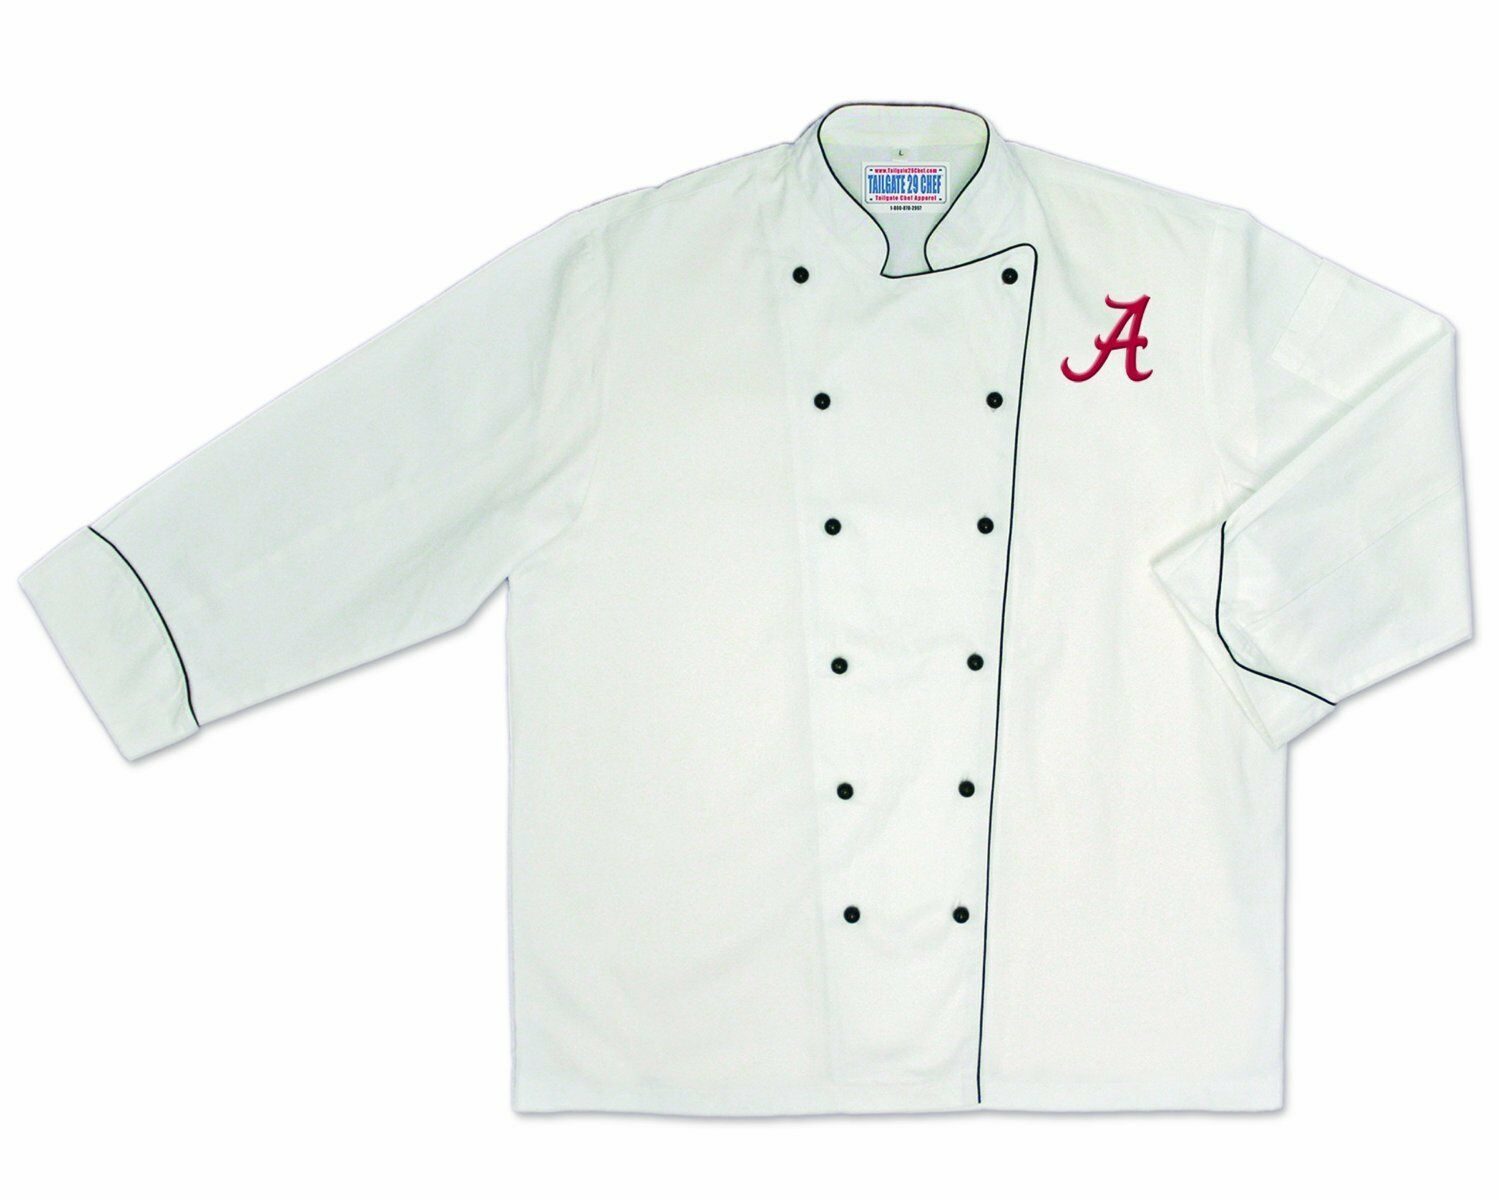 Alabama Crimson Tide Chef Coat Embroidered for Barbecue, Tailgate Party, Size M